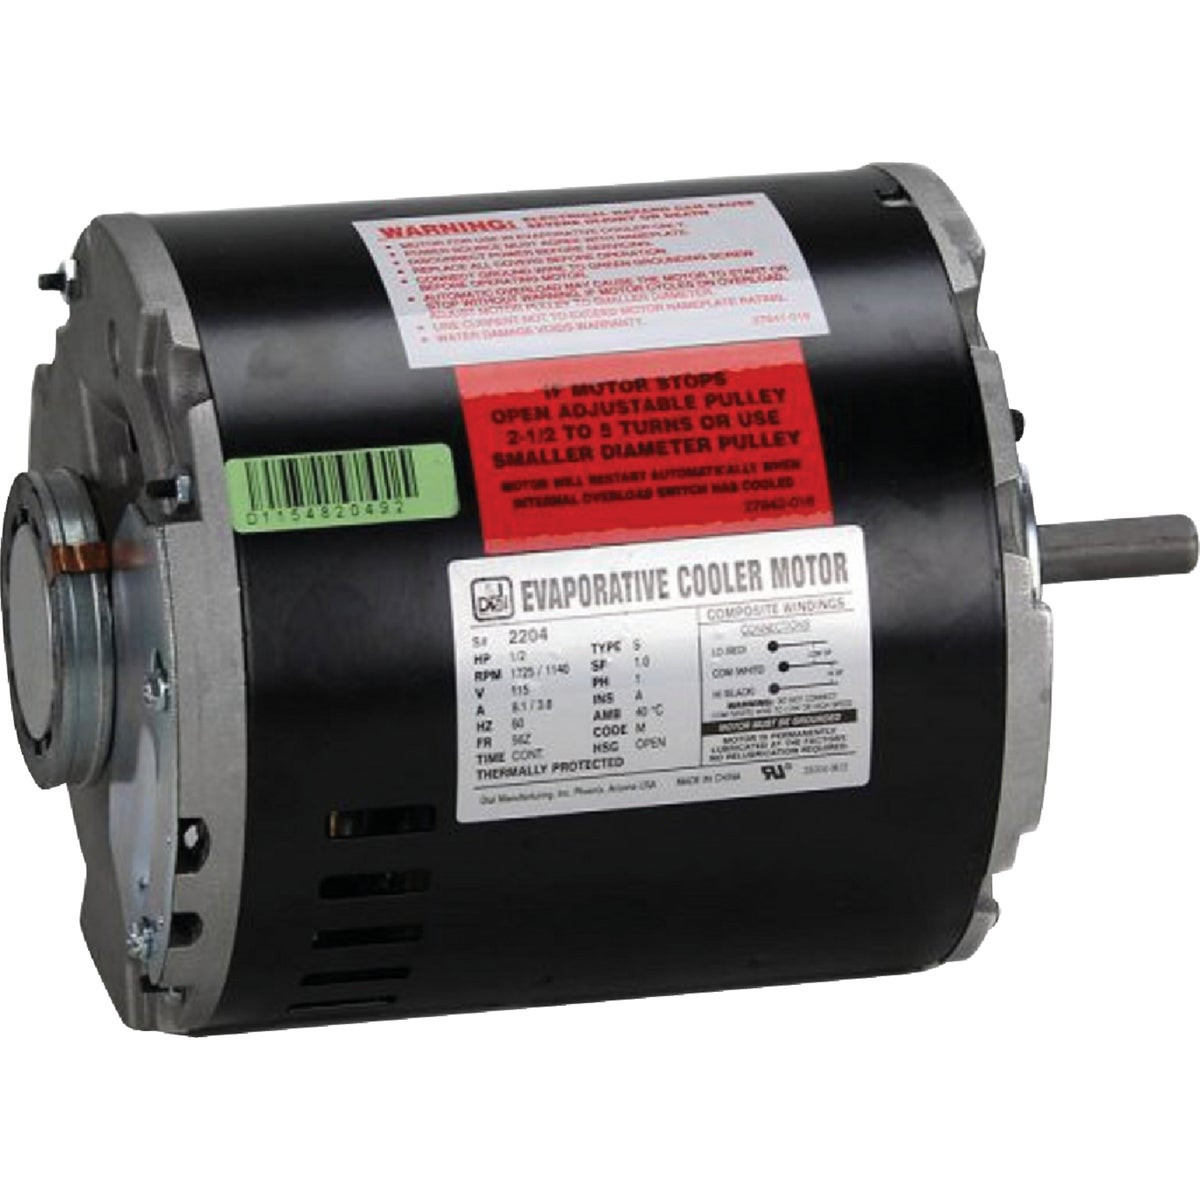 1/2HP 2 SPEED MOTOR